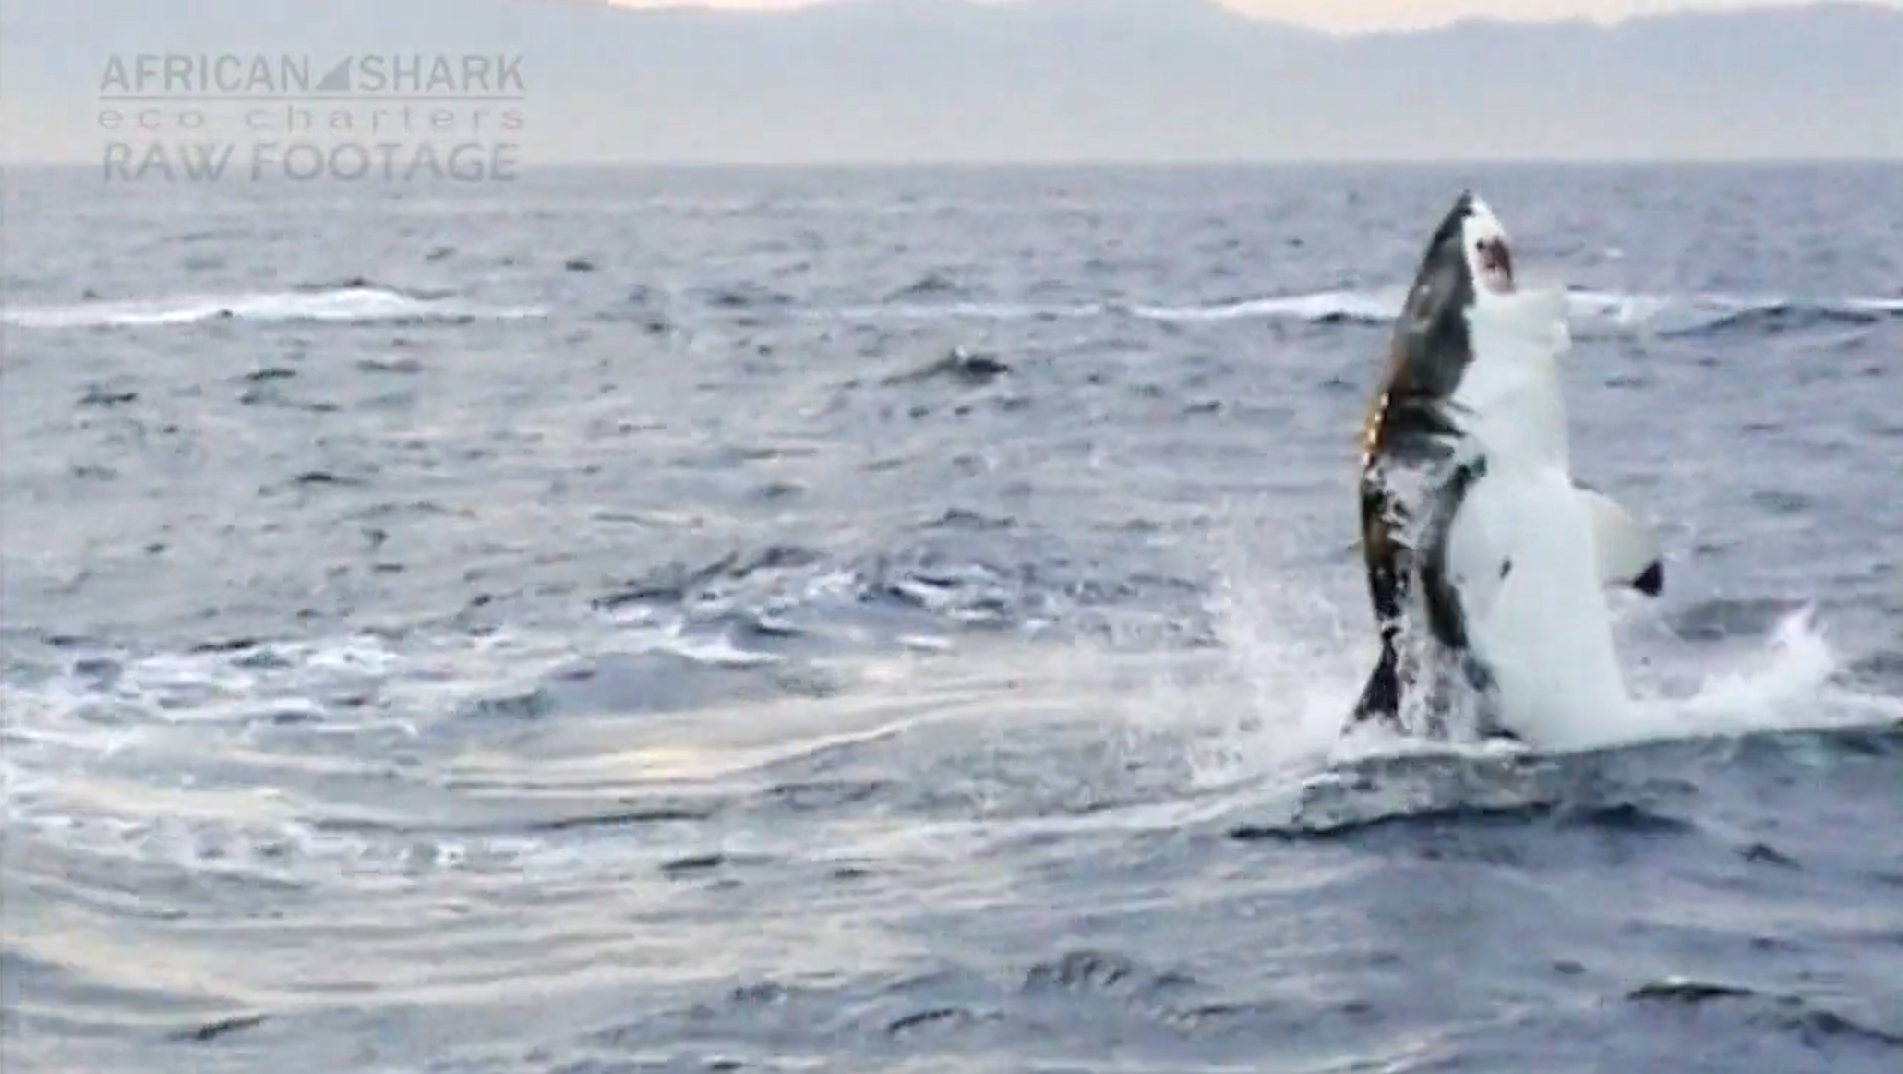 Vertical Shark Breach (Raw Footage) by Rob Lawrence